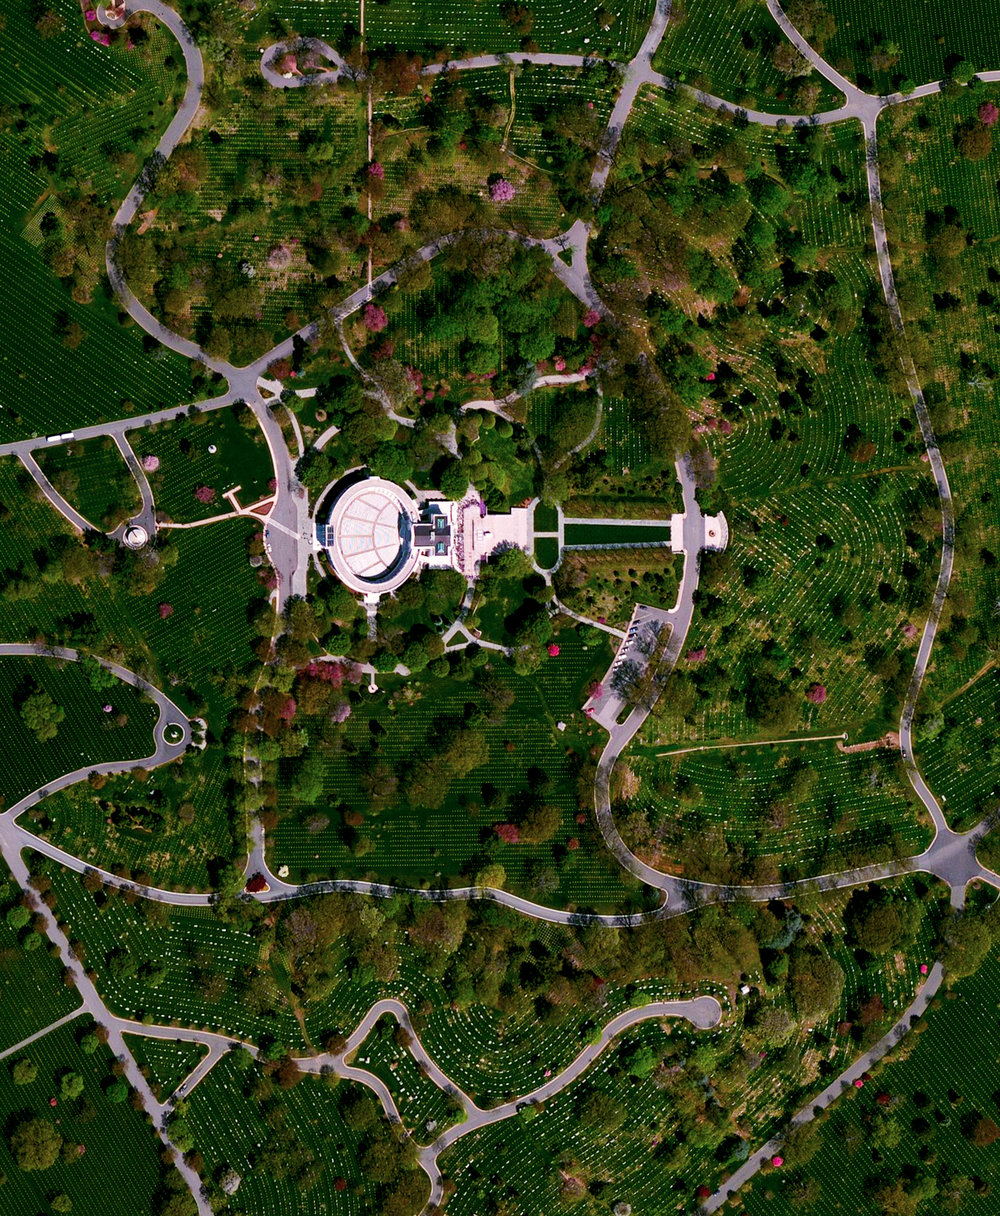 In honor of #MemorialDay in the United States, we've selected an Overview of Arlington National Cemetery outside of Washington, D.C. Since the American Civil War, the 624-acre cemetery has become the final resting place for veterans of the nation's conflicts. The structure seen here is the Arlington Memorial Amphitheater that also contains the Tomb of the Unknown Soldier.  38°52′48″N, 77°04′12″W  Source imagery: DigitalGlobe